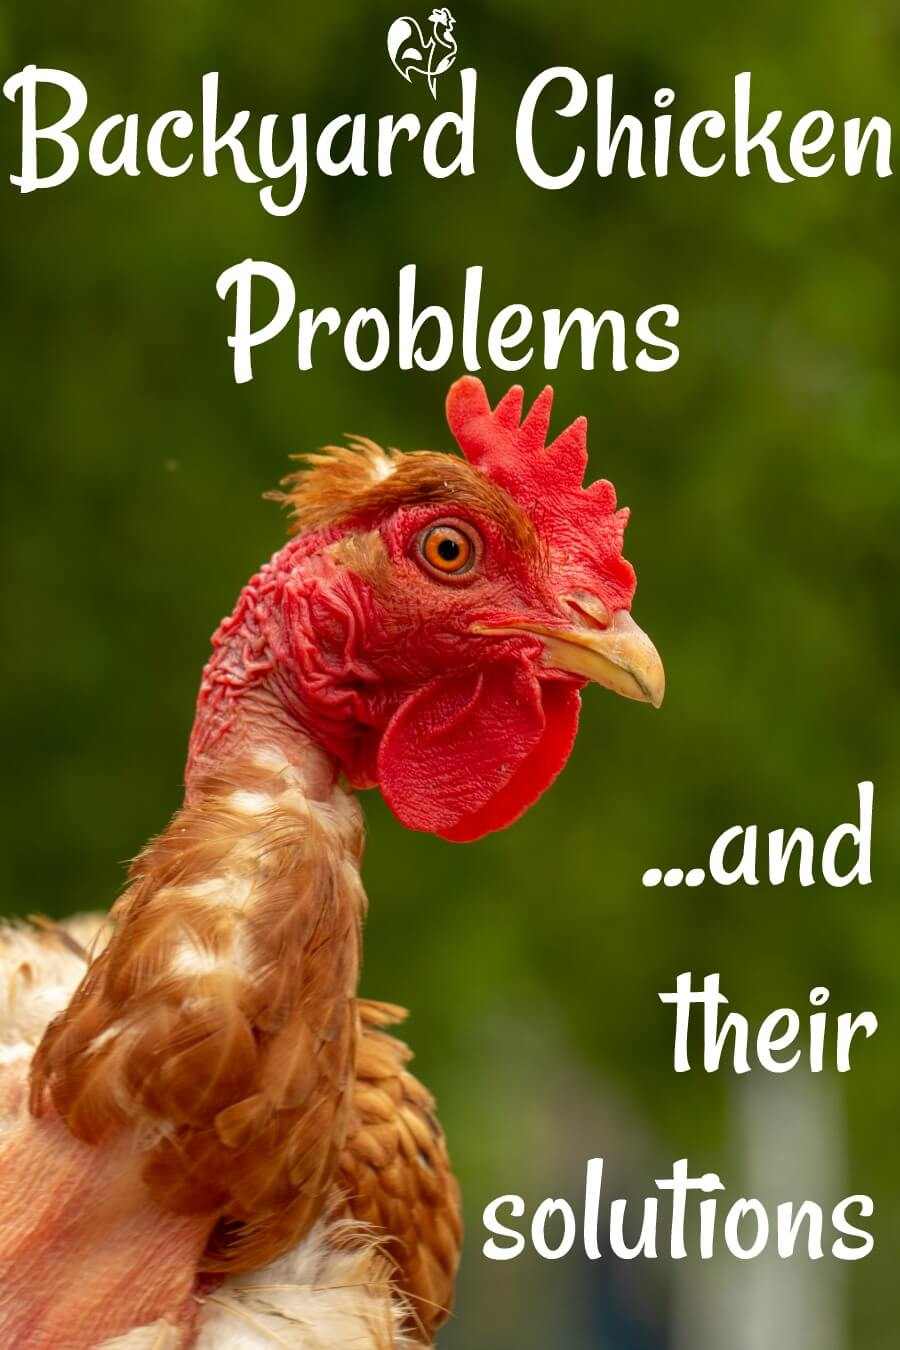 Chicken husbandry problems - Pin for later.